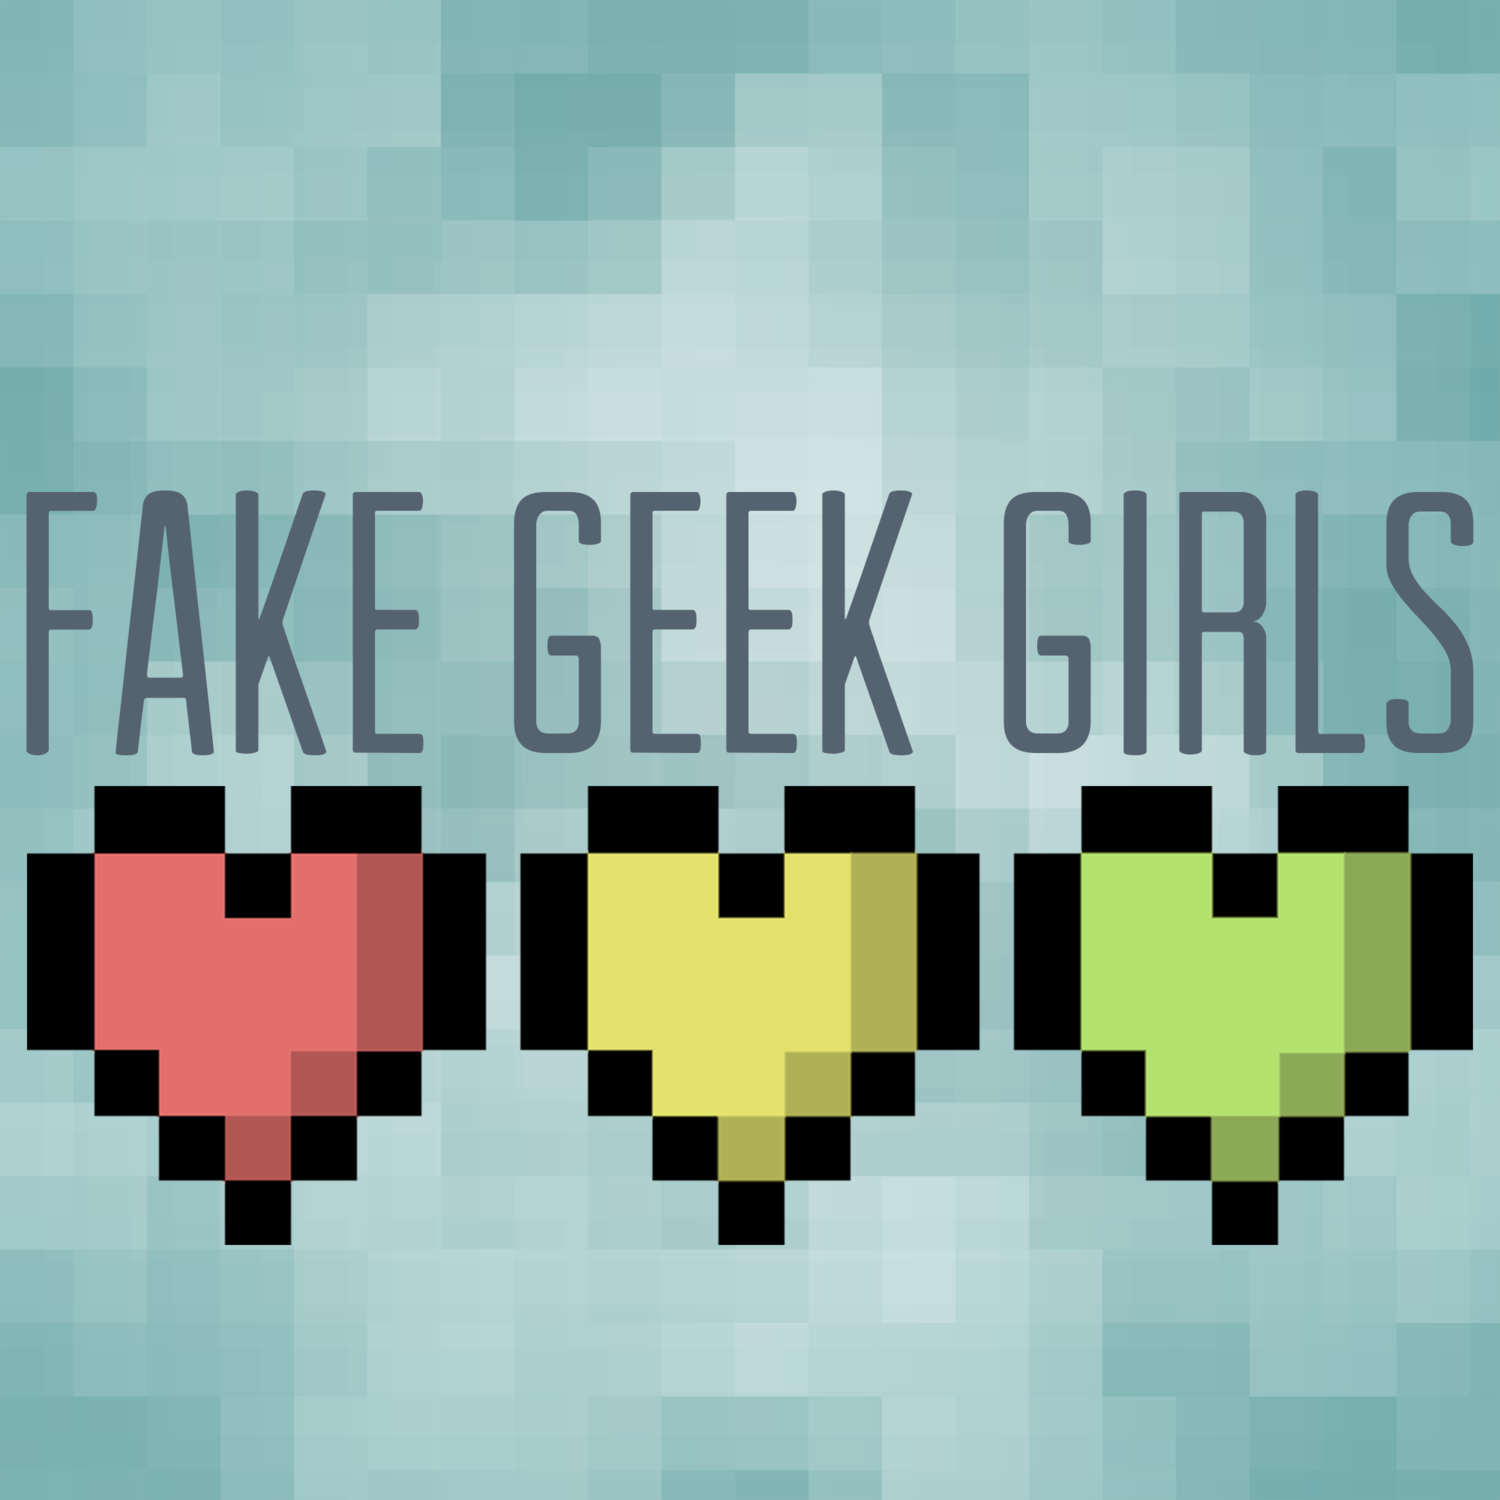 Fake Geek Girls